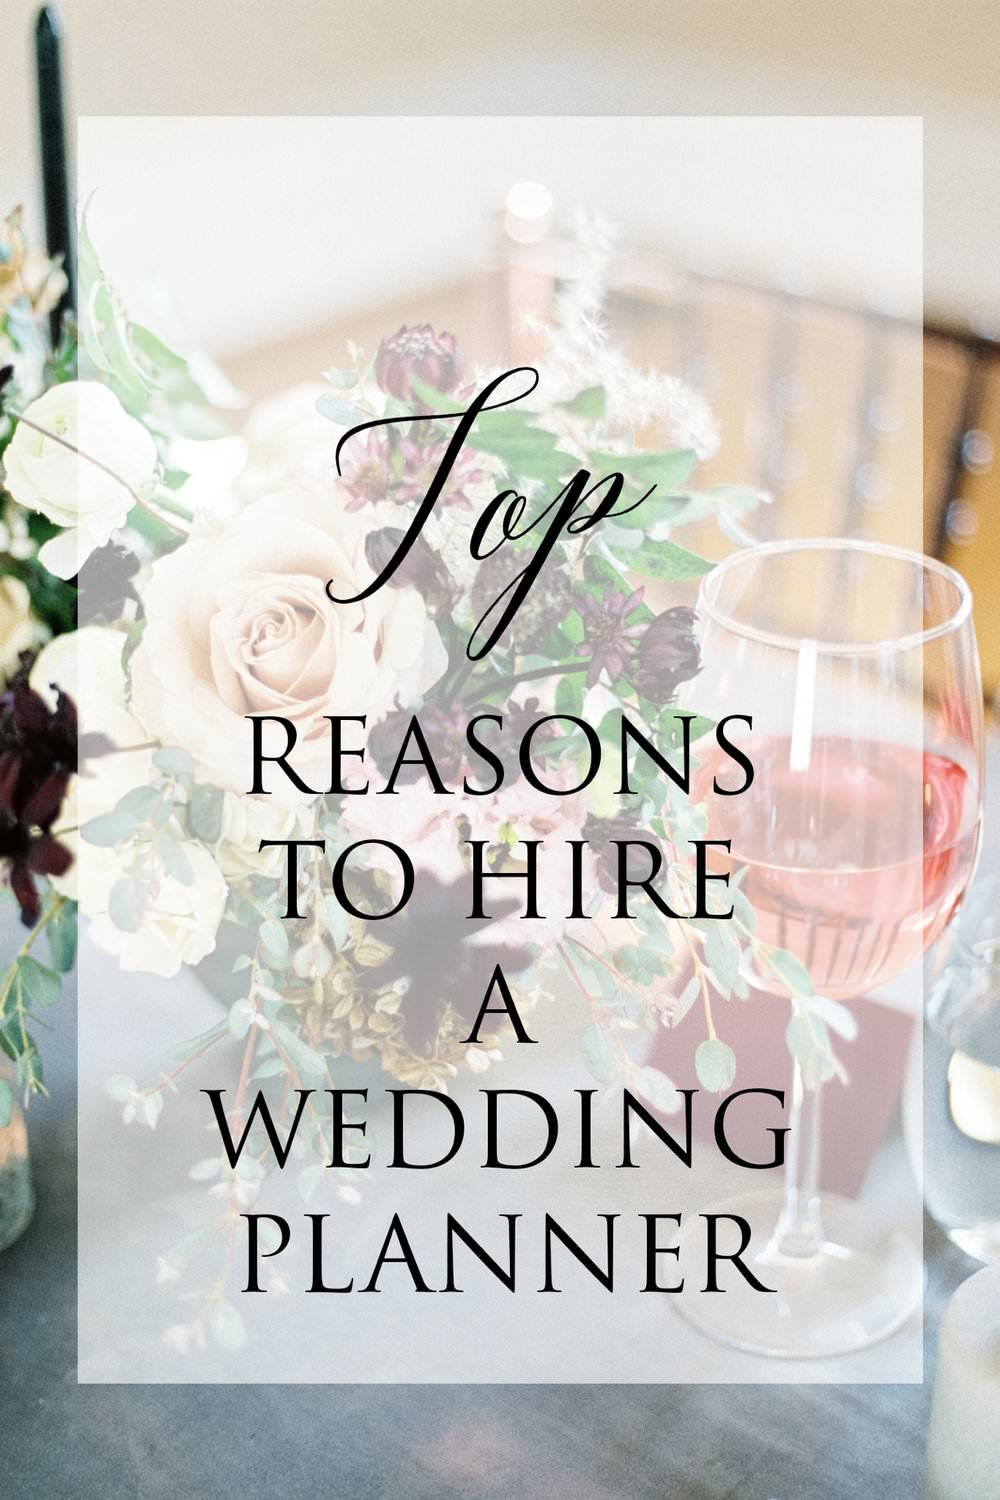 Top 10 Reasons to Hire a Wedding Planner - Weddings have always been quite an undertaking for those involved. Between determining the budget, finding and working with a dozen vendors, choosing your guest list, and everything in between, planning a wedding celebration is no easy task...read more